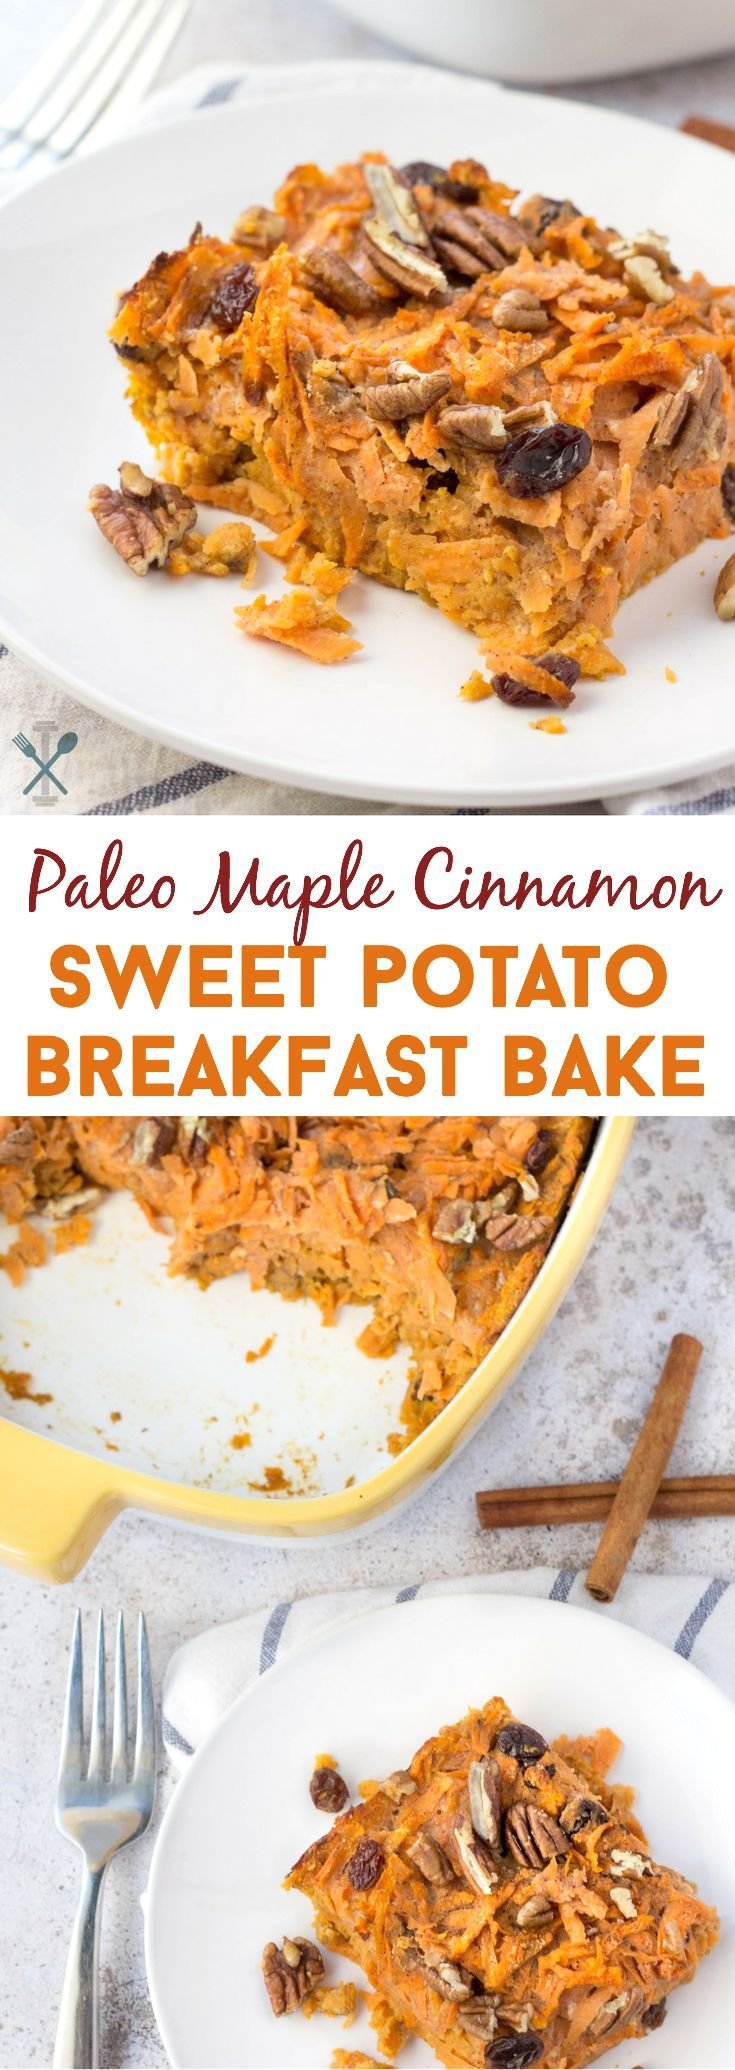 This paleo breakfast bake is the perfect way to start your day! Natural sweetened and made with shredded sweet potatoes. Warm, hearty, and healthy!